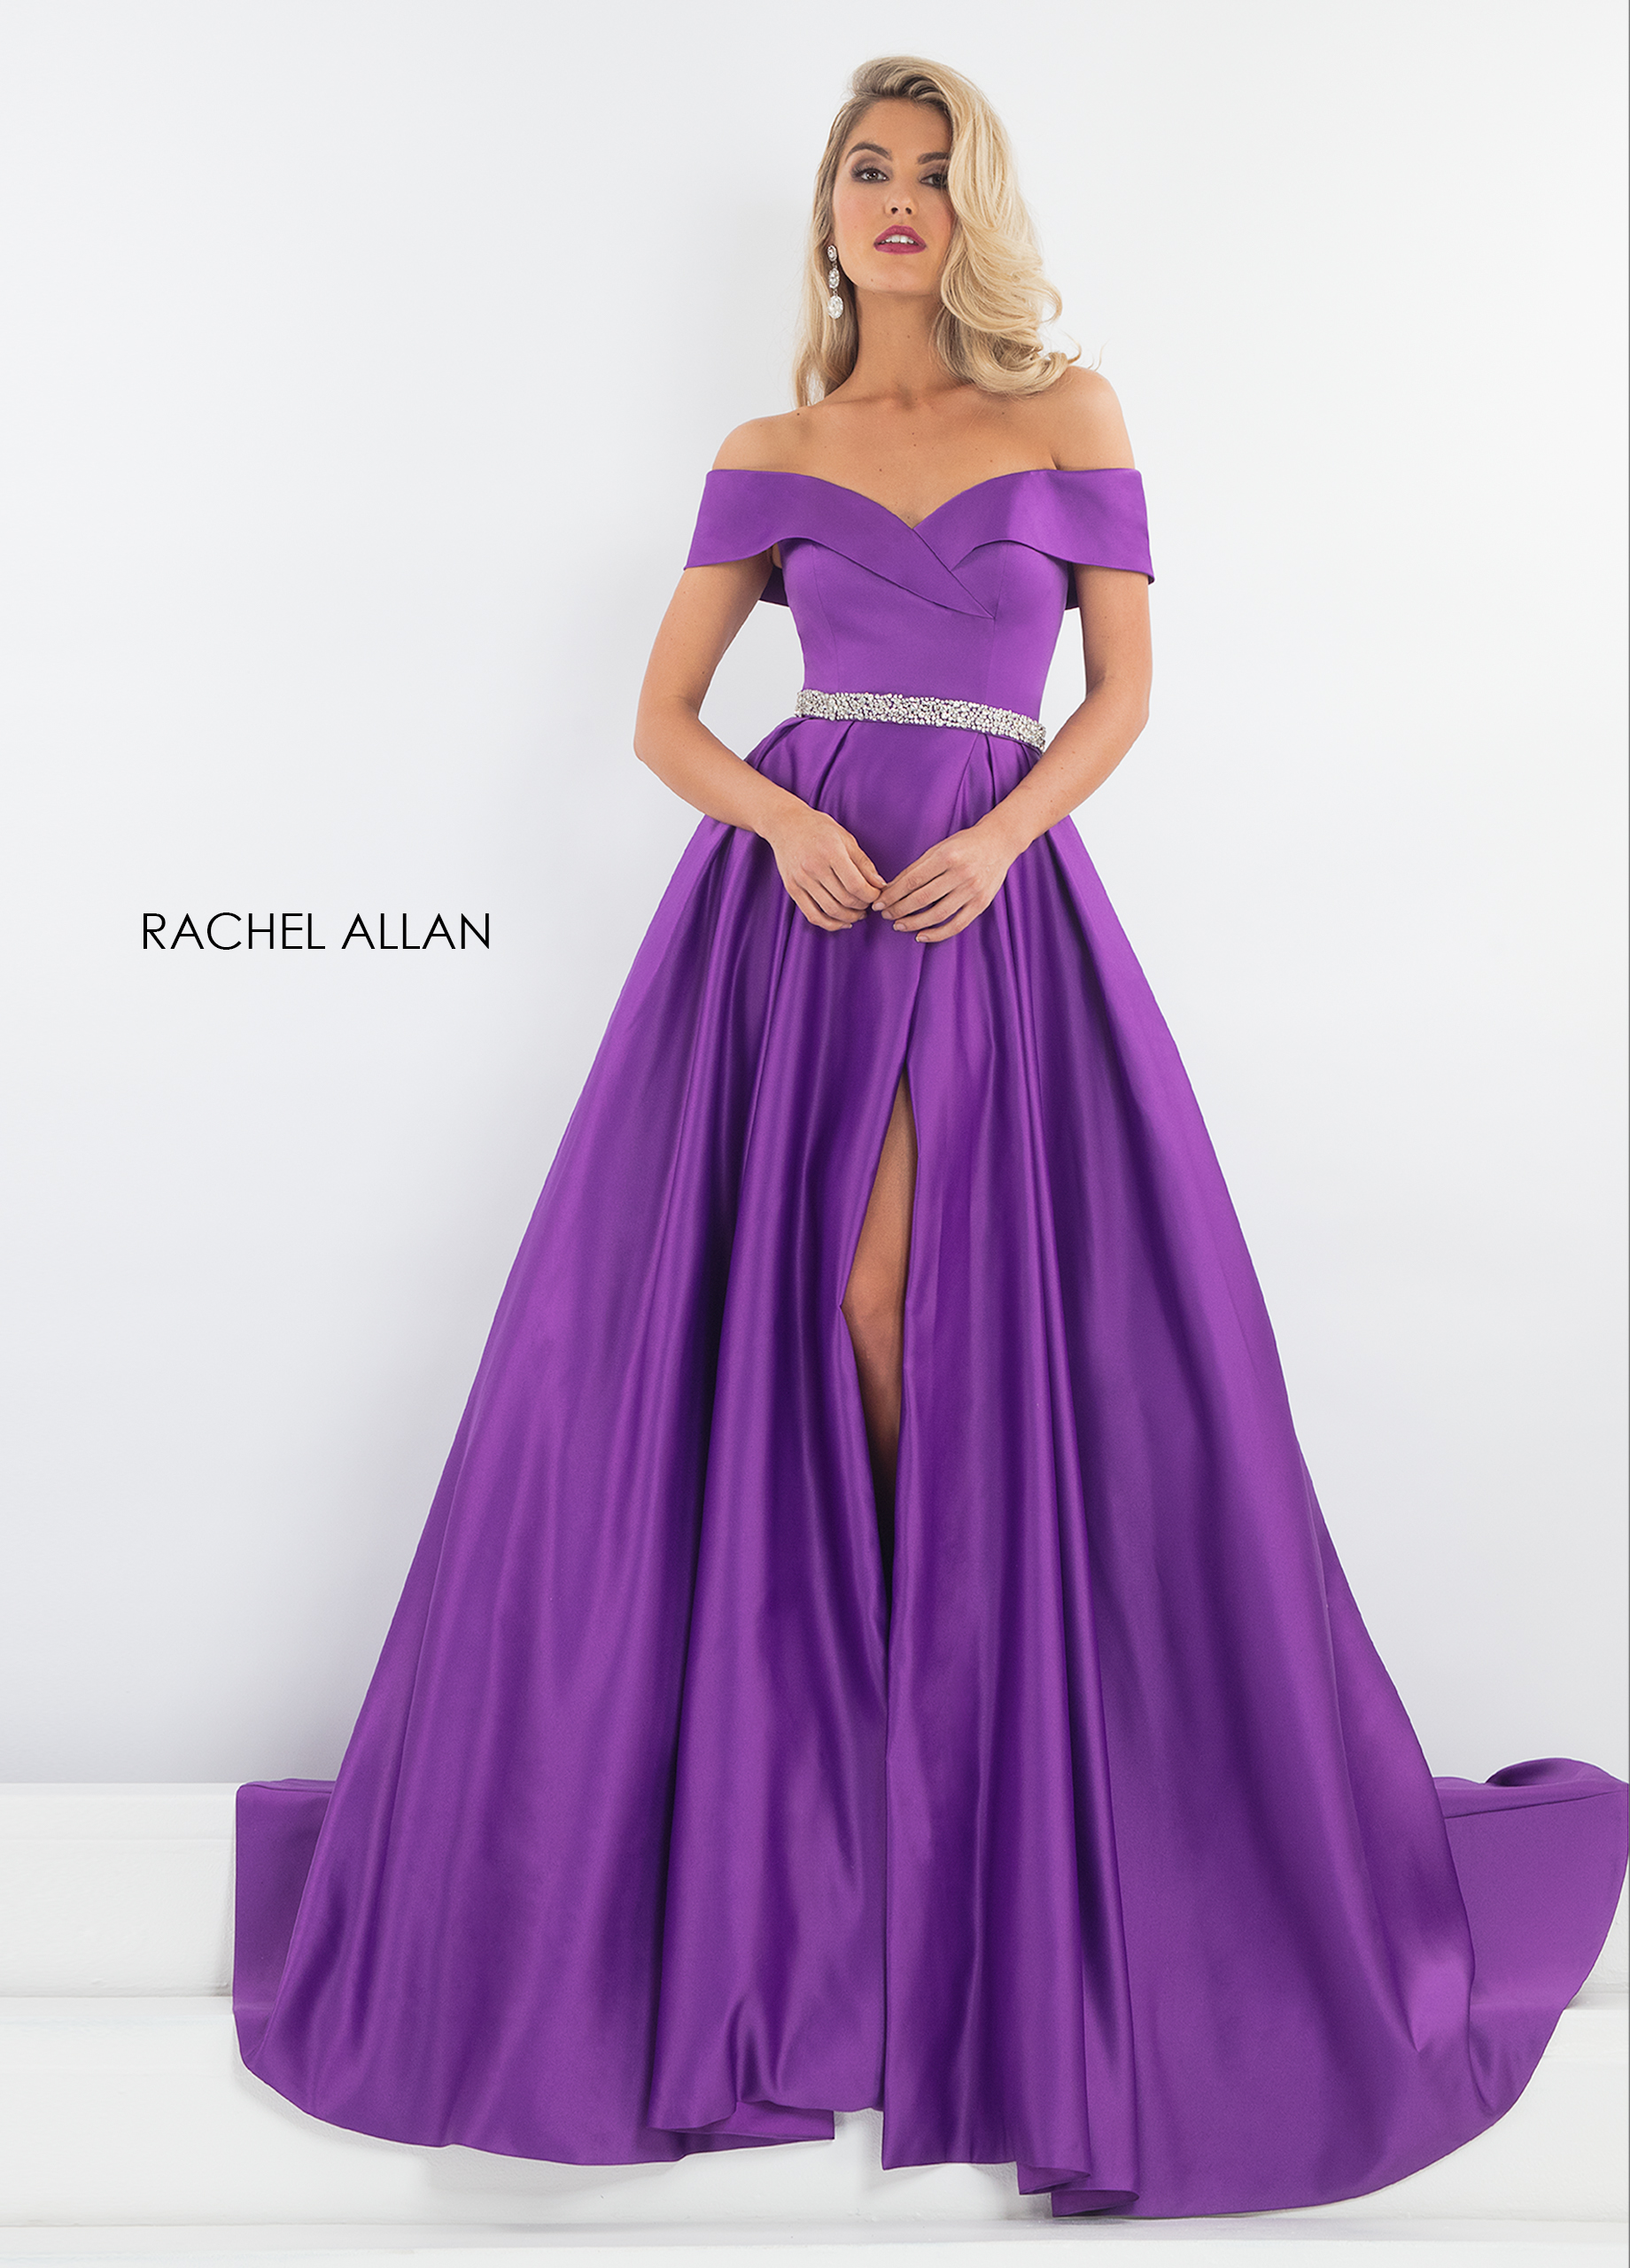 Off The Shoulder Fit & Flare Pageant Dresses in Purple Color